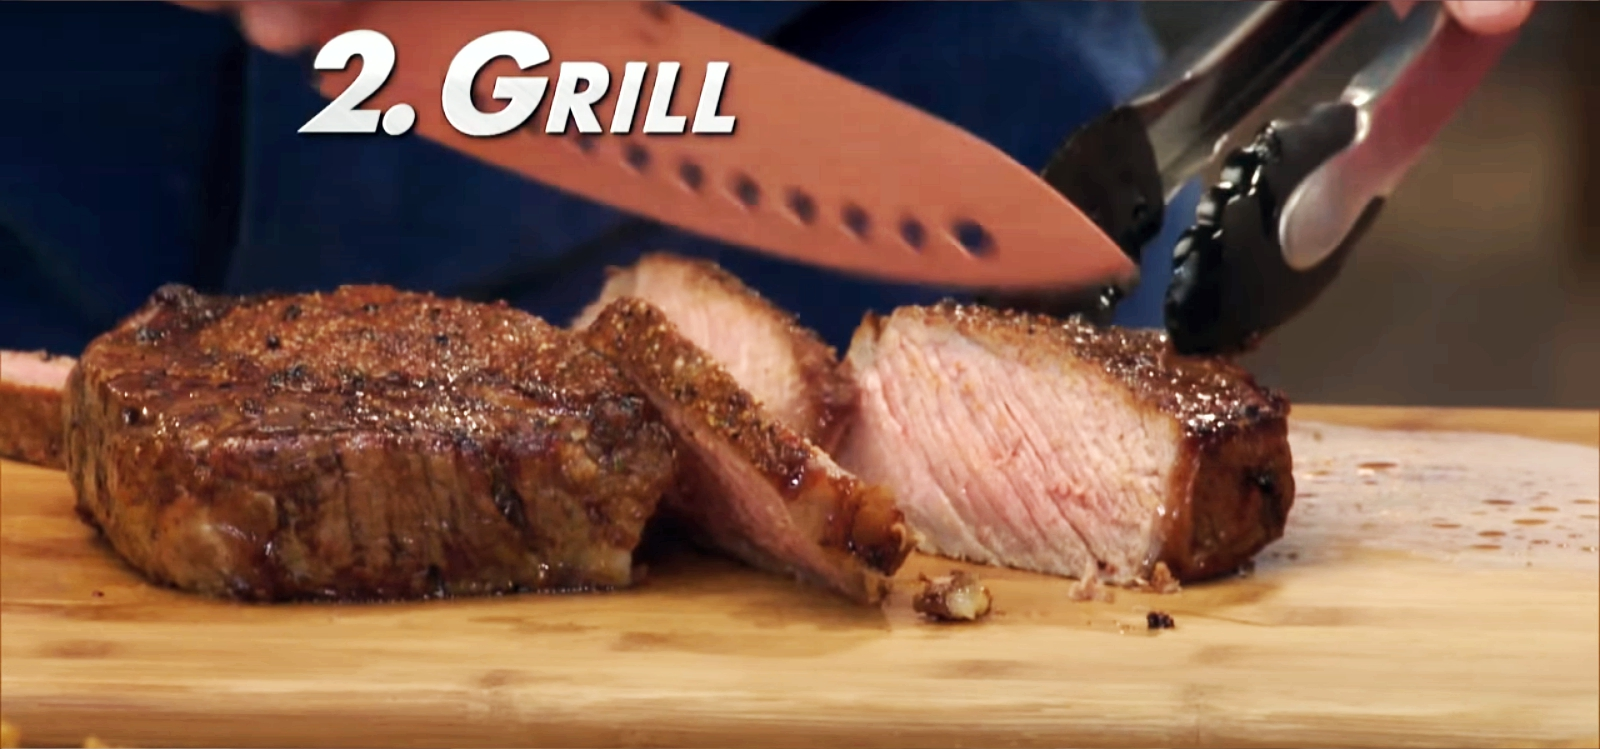 grill with power air fryer